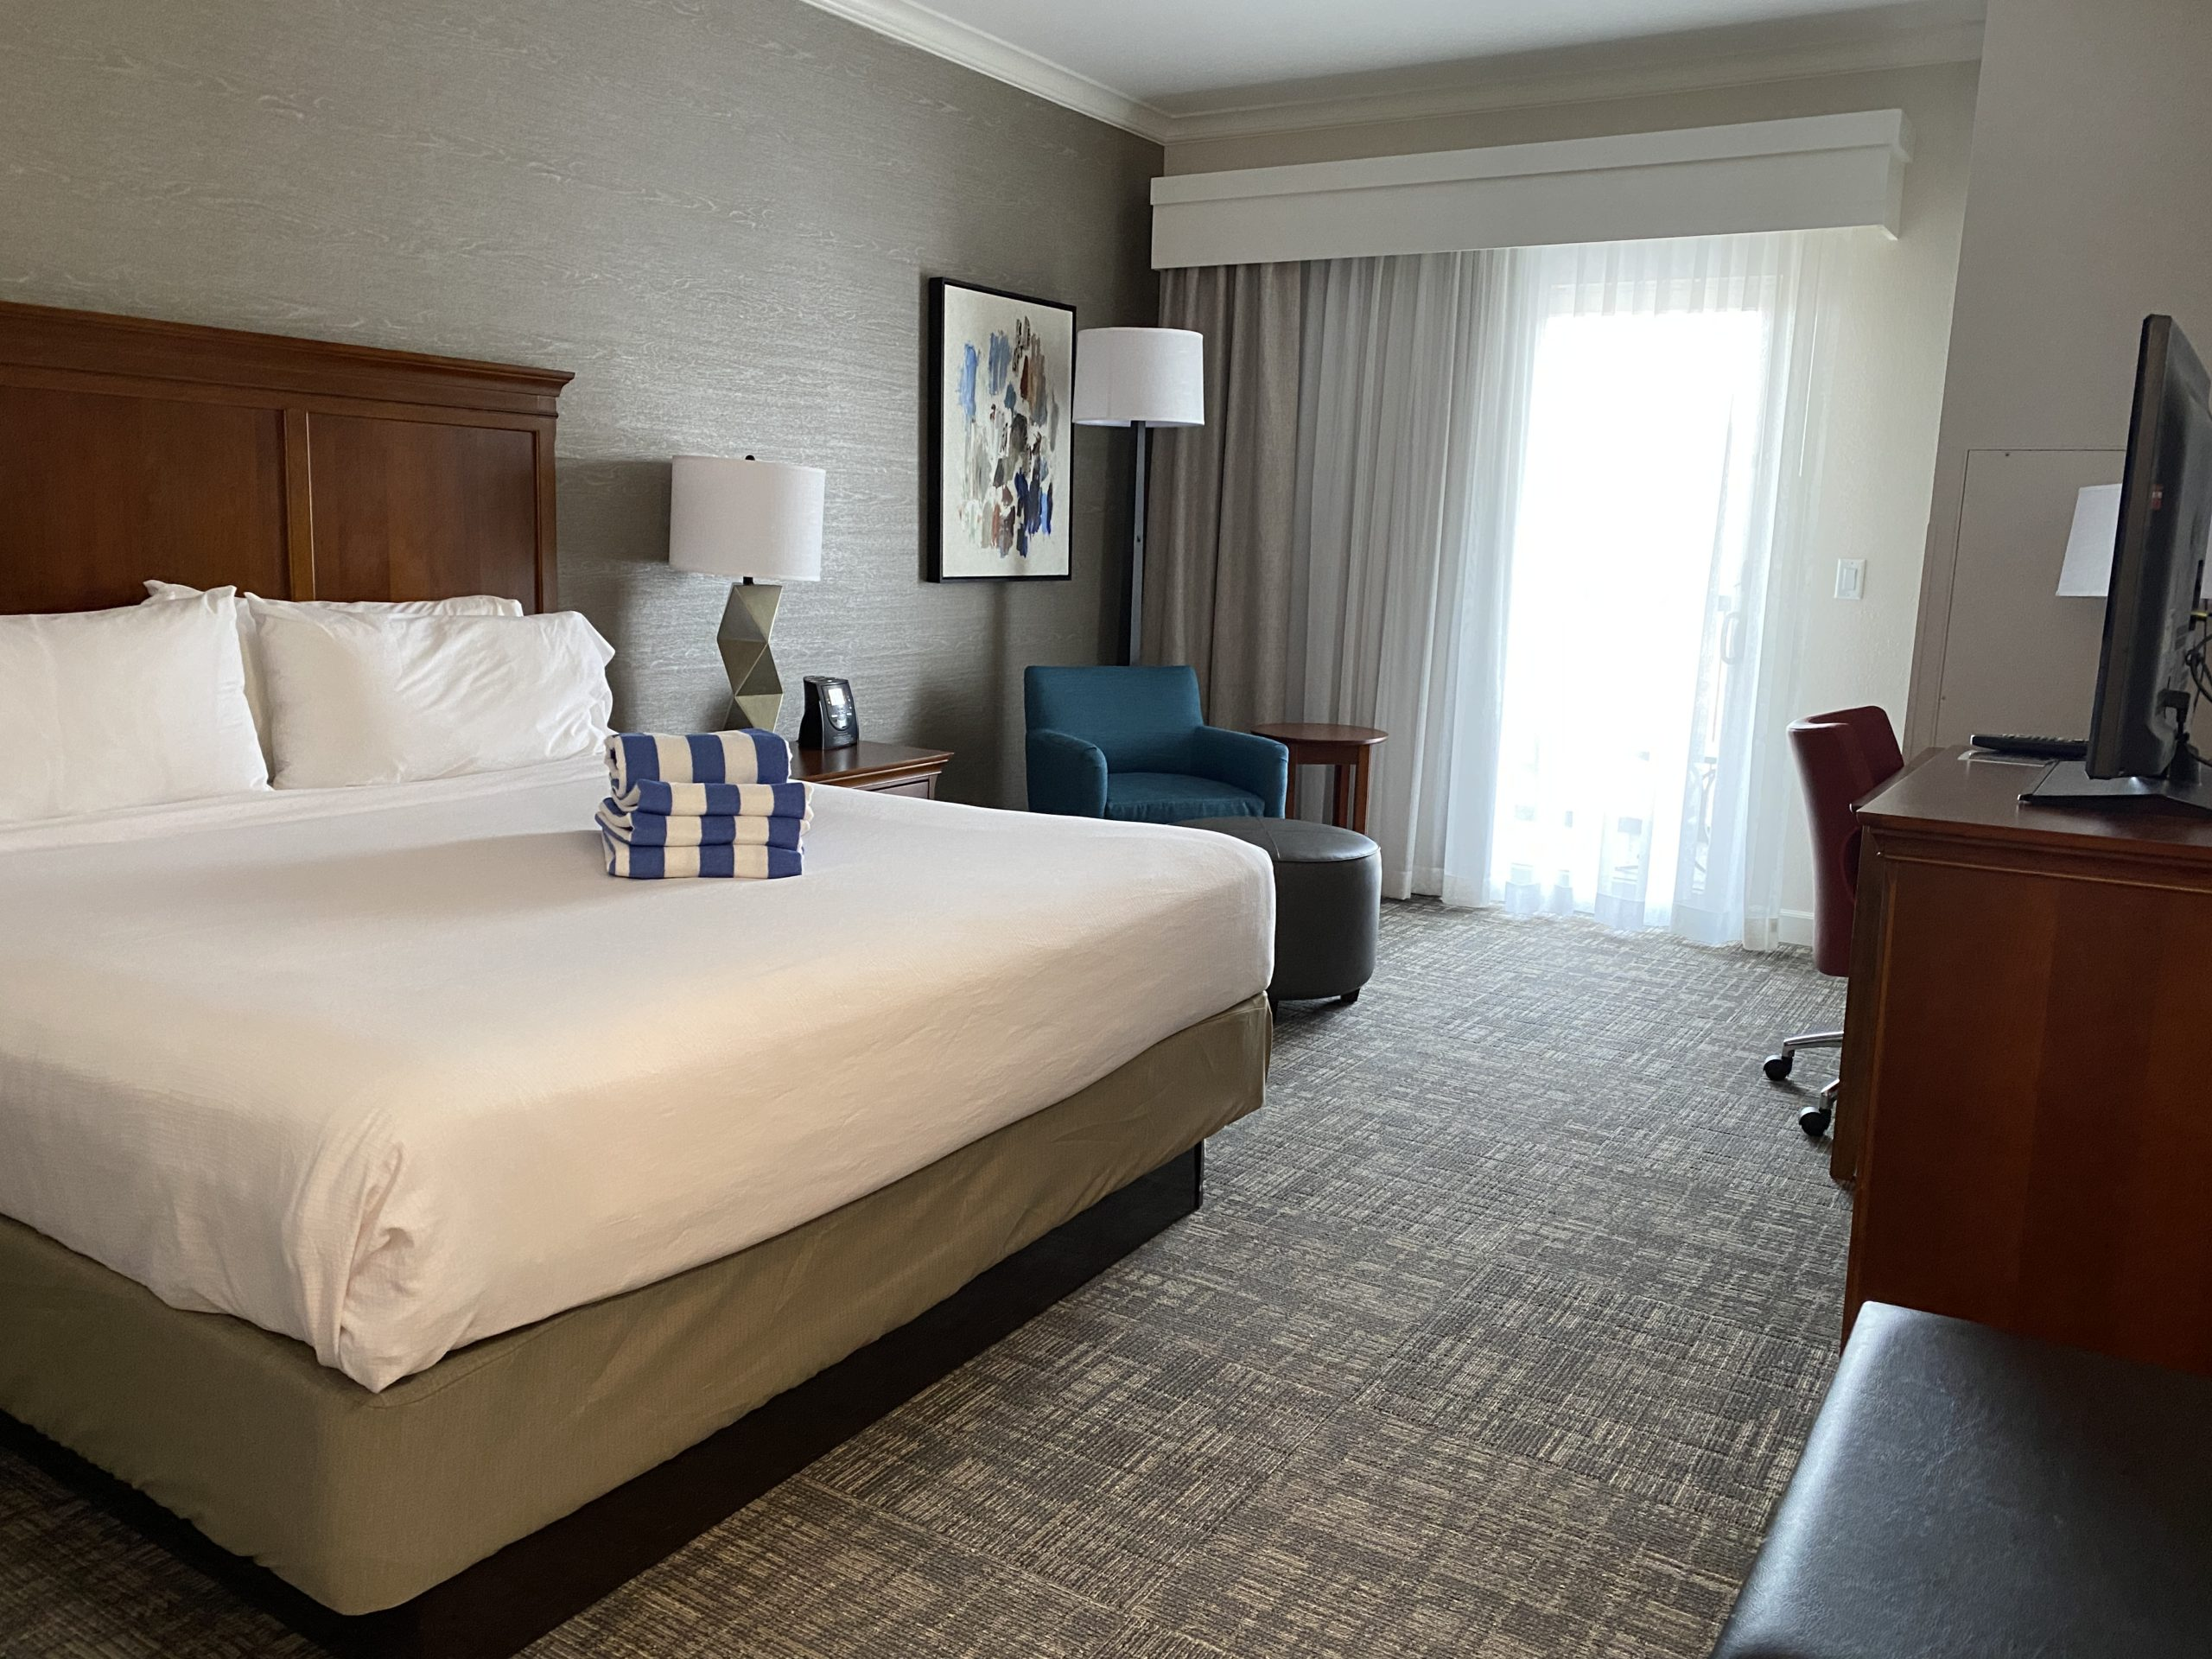 holiday inn resort Lake George is the perfect place for your wintery fun in Lake George New York